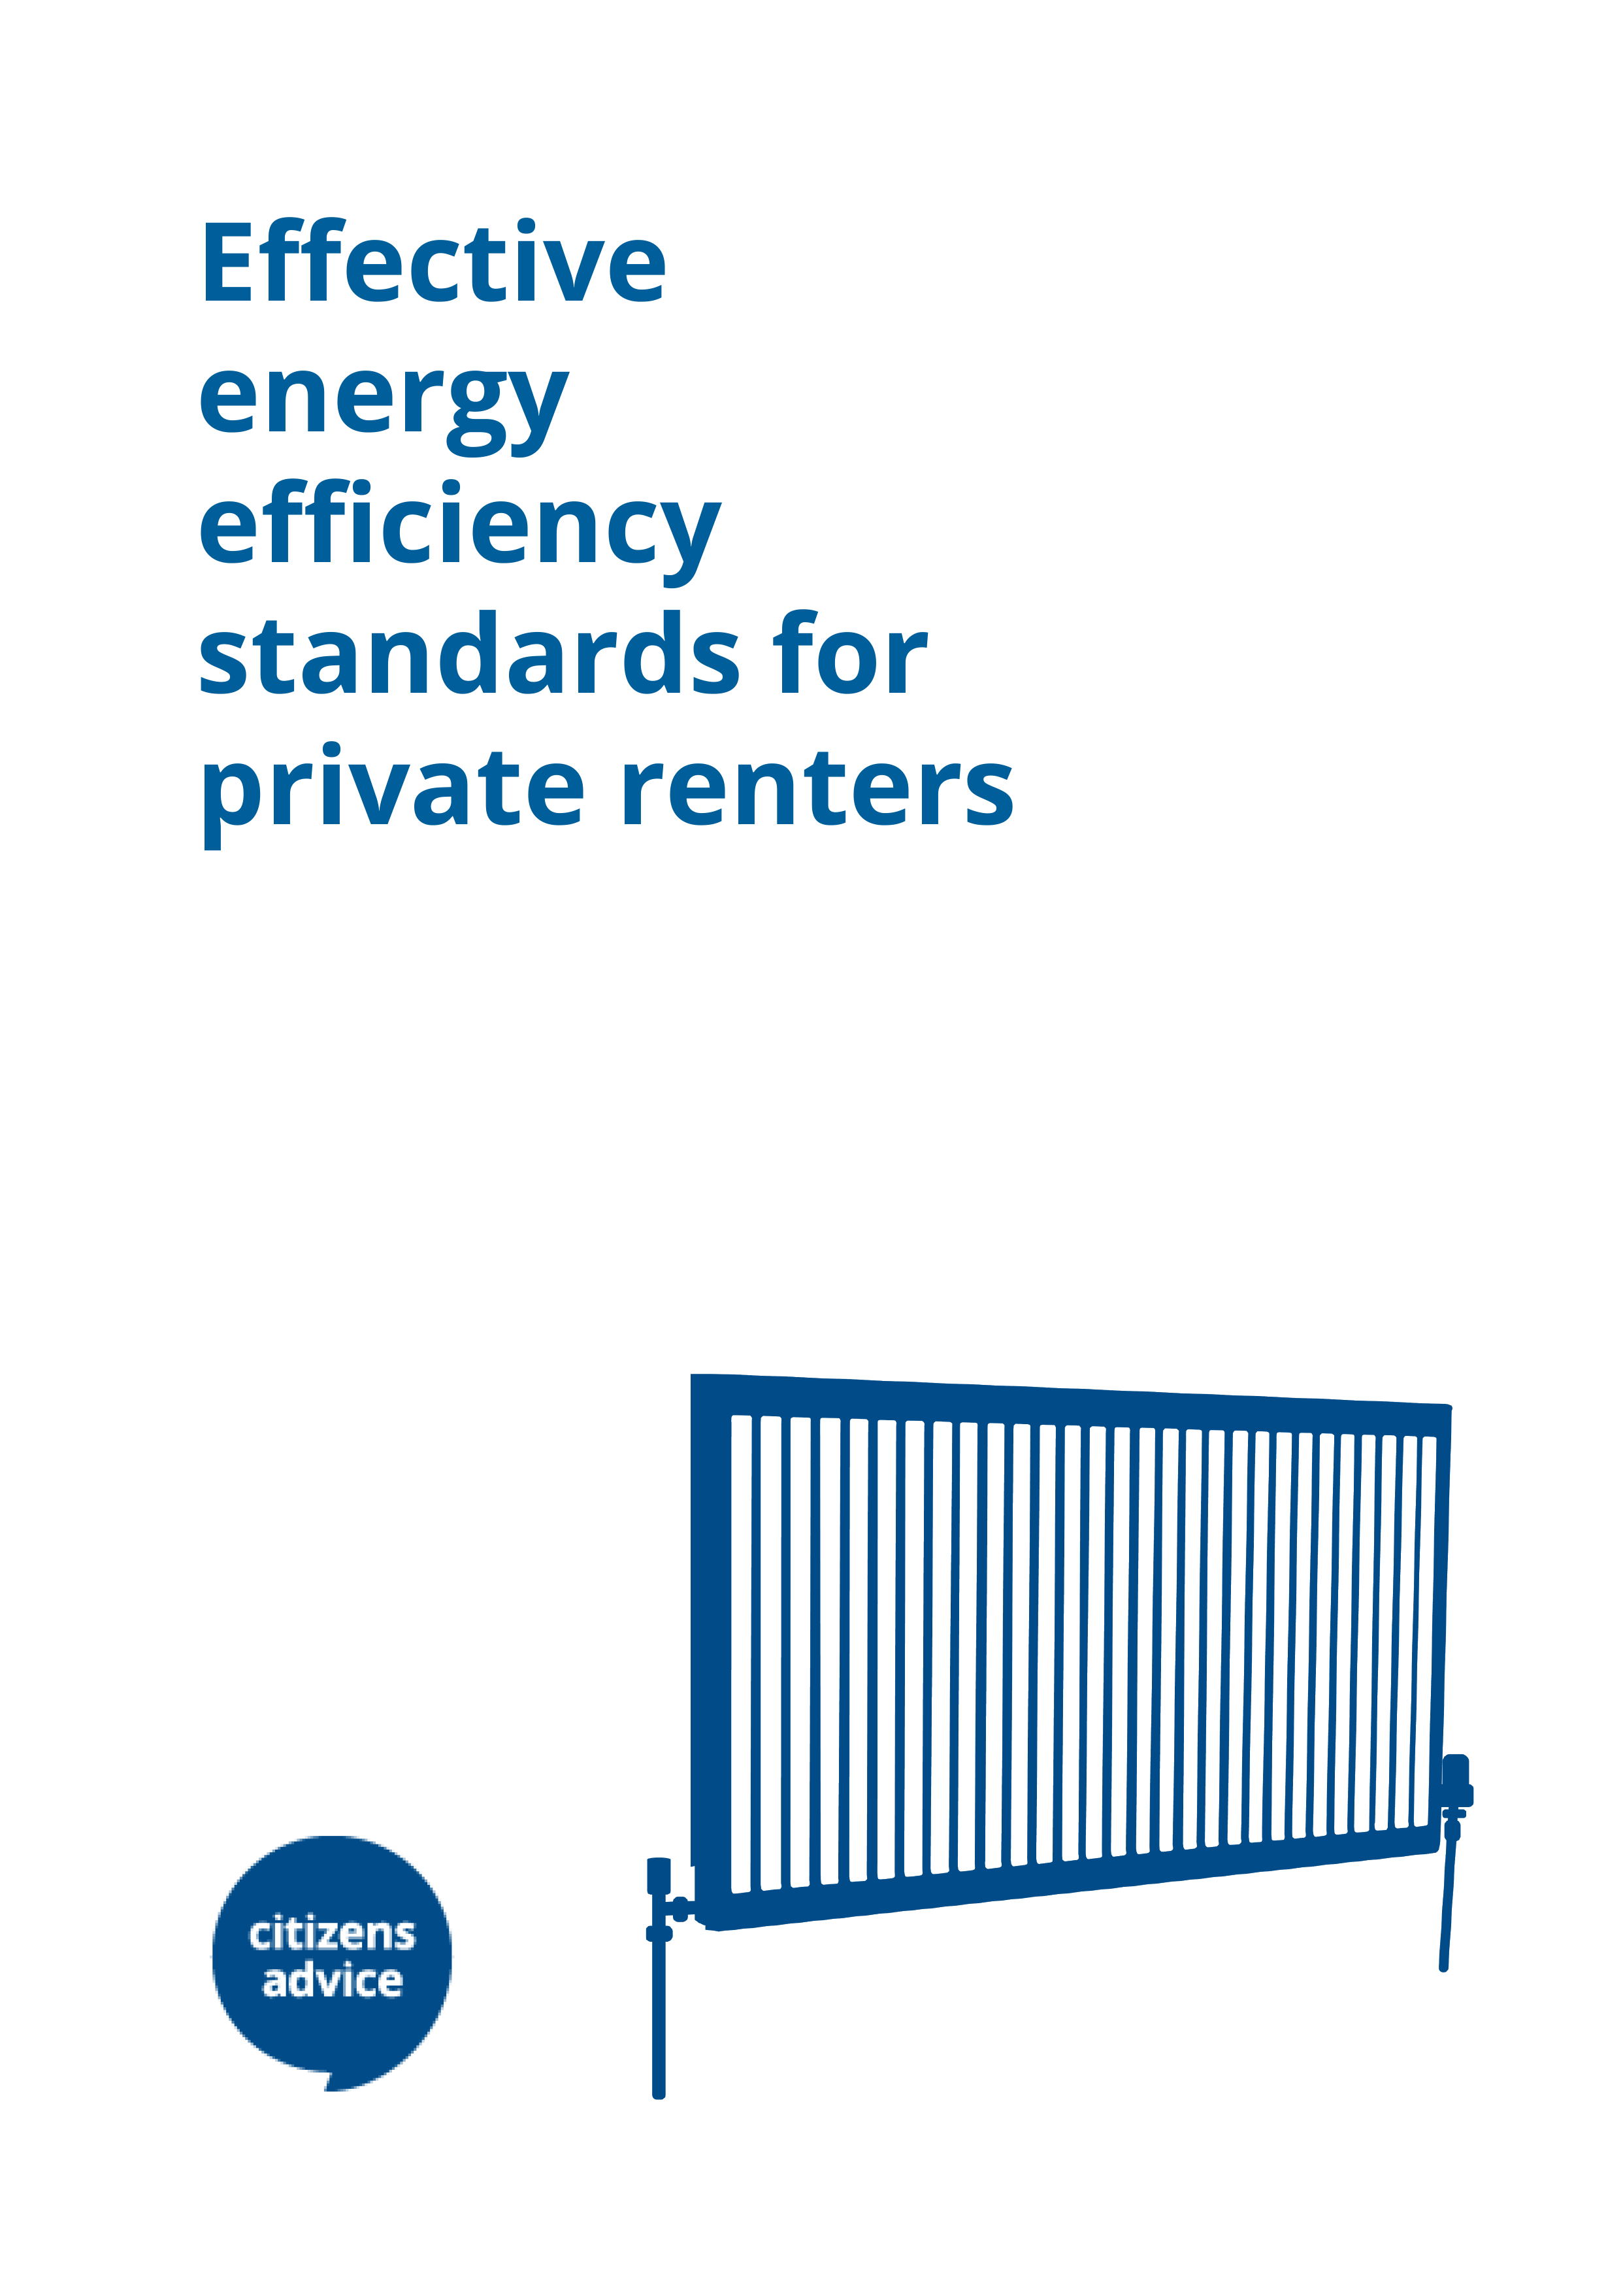 Effective energy efficiency standards for private renters